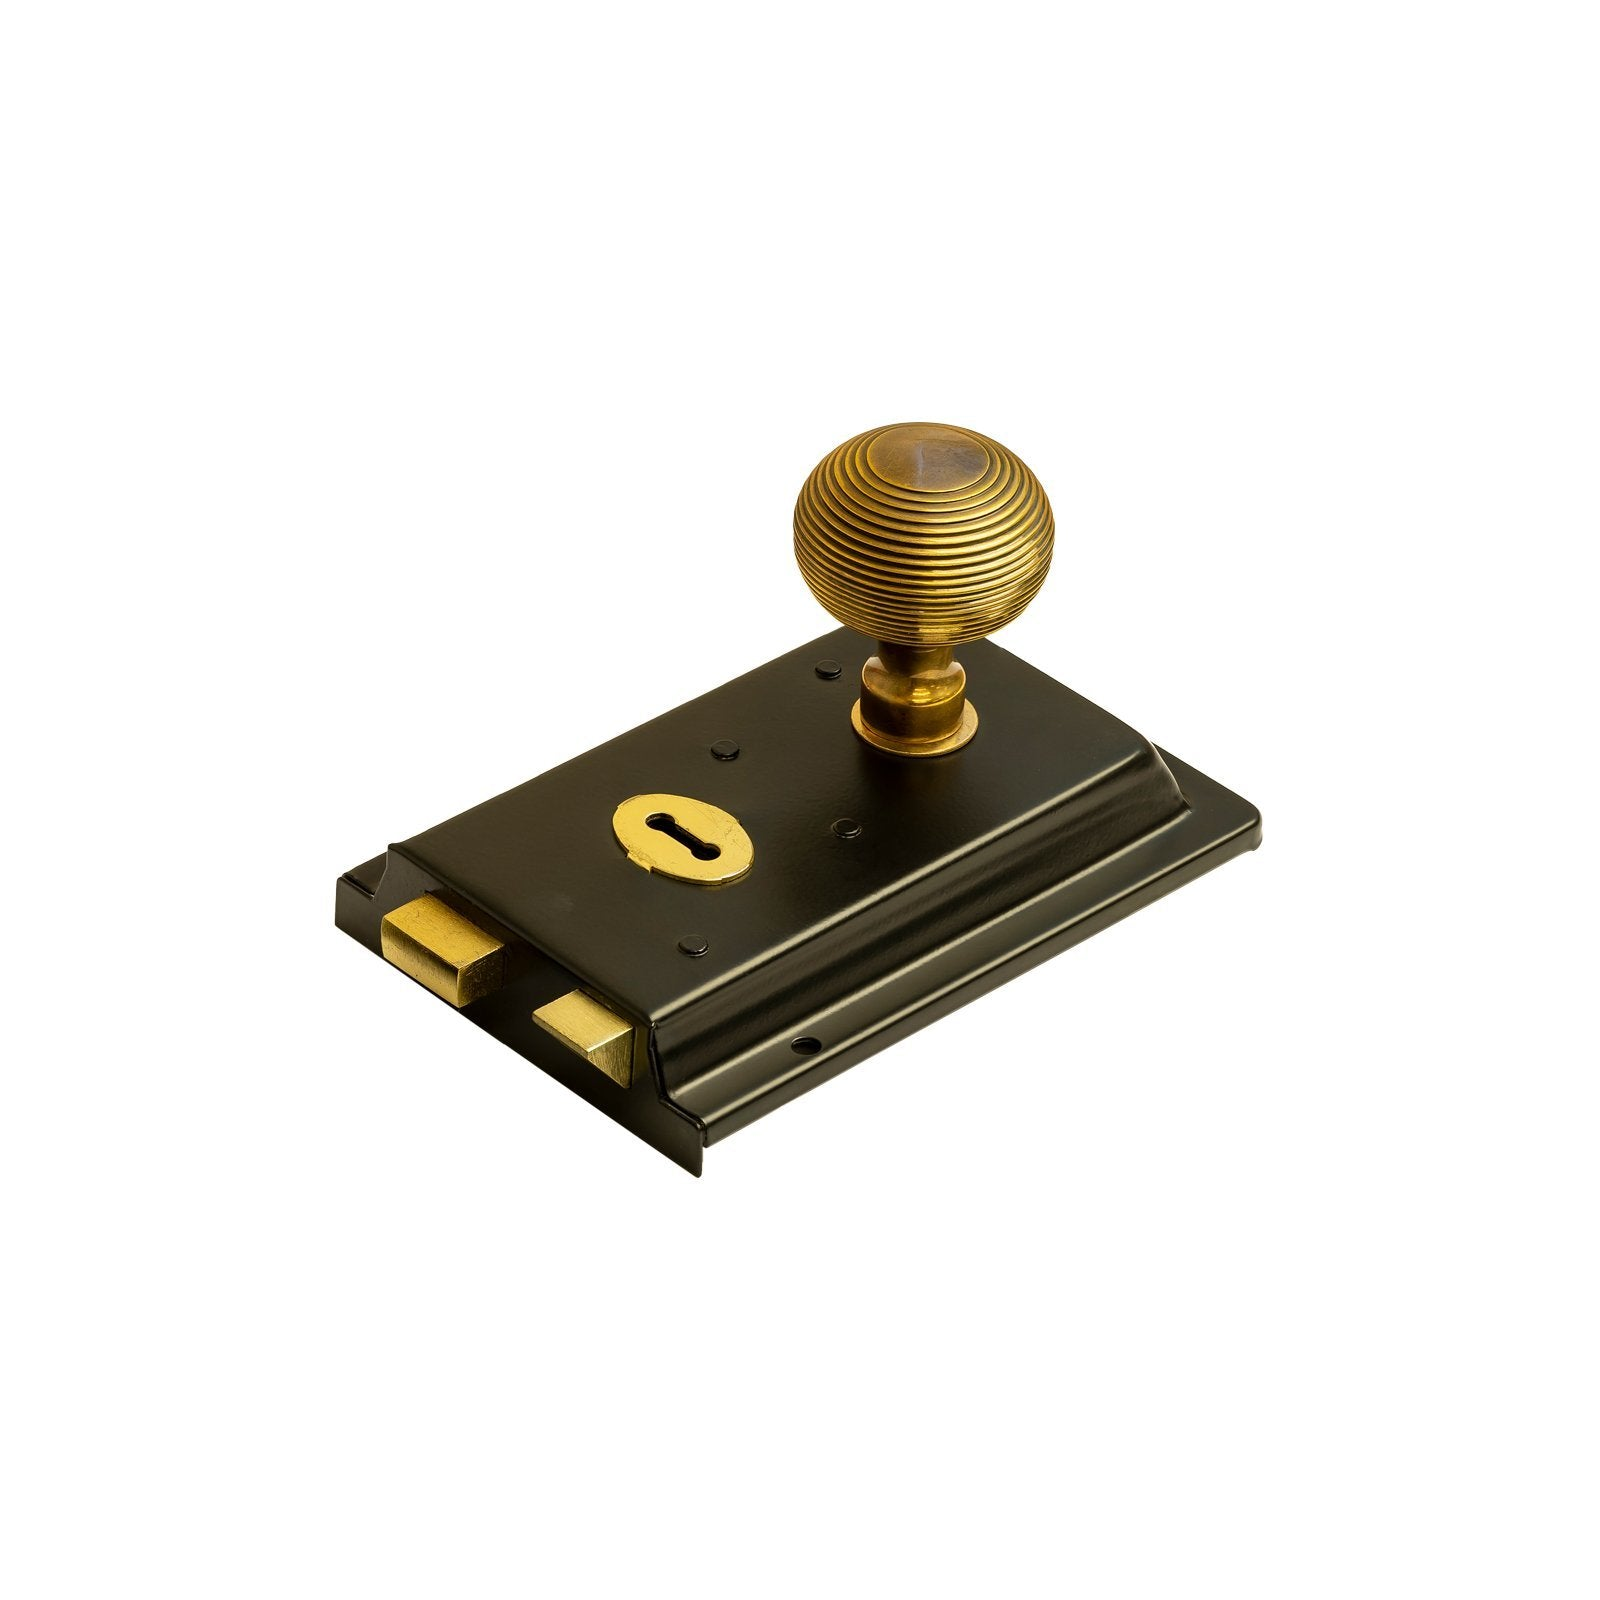 victorian rim locks, victorian door locks, Rim Locks in Black Finish and Brass Fittings